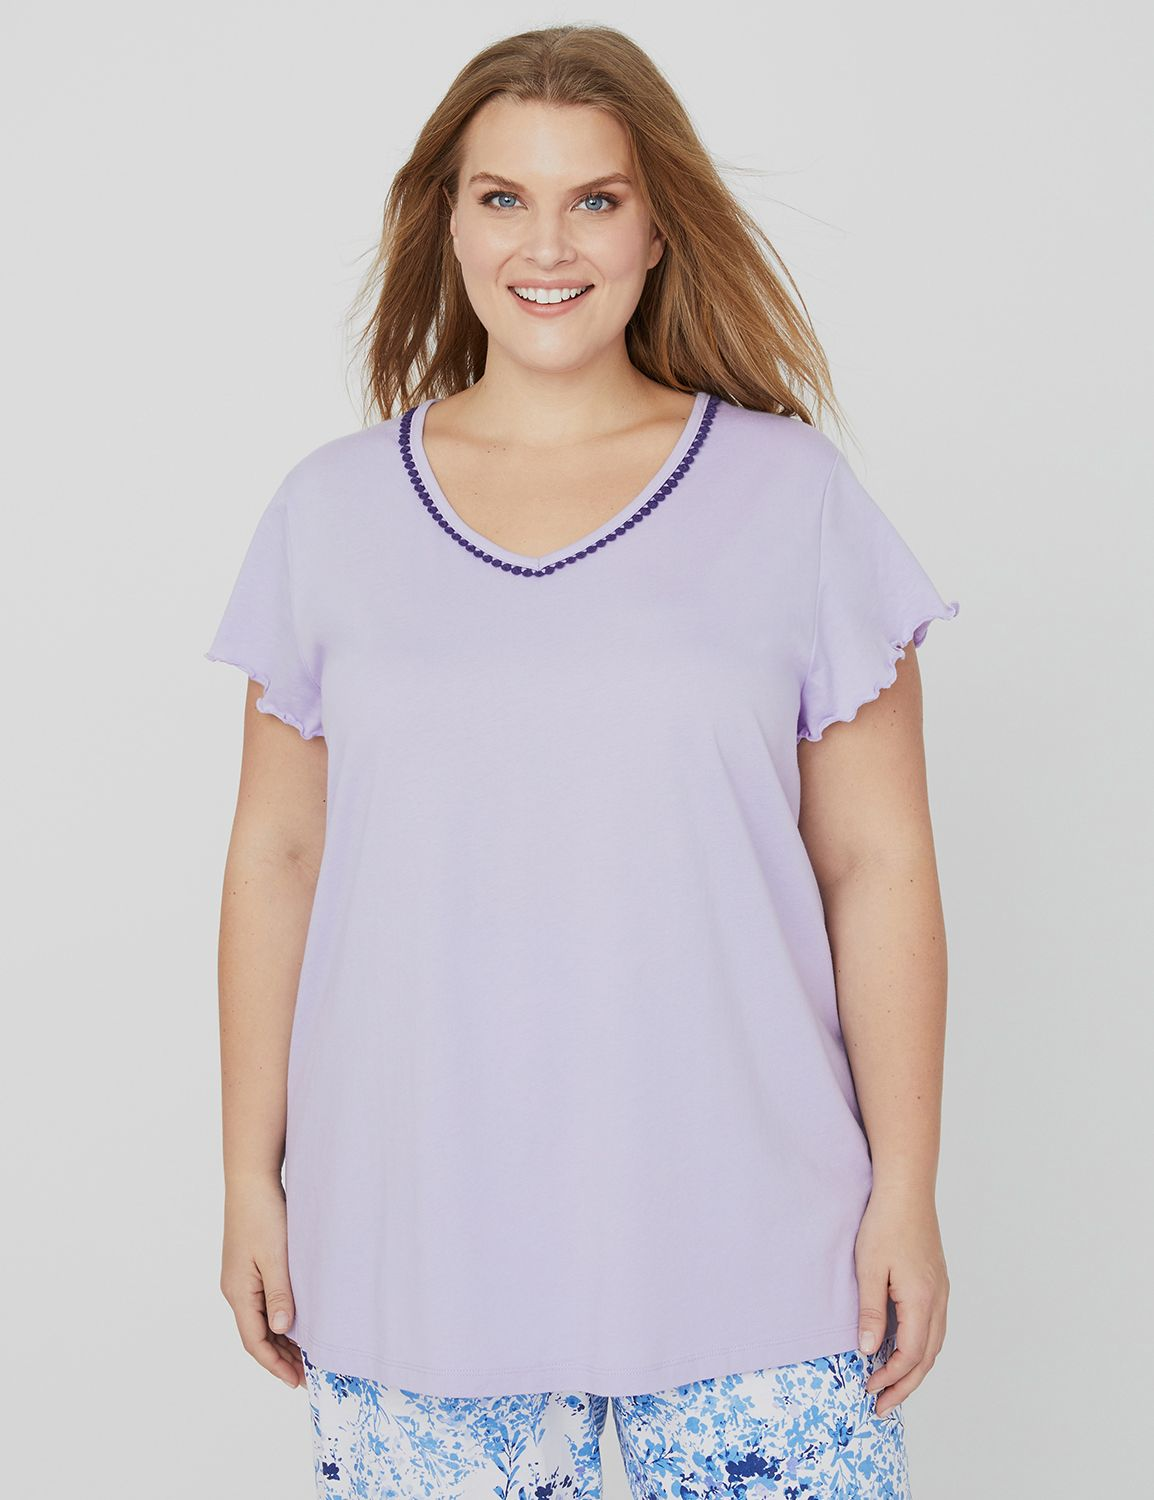 All The Details Sleep Tee 1088483- Ruffle Sleeve Tee w/ pom p MP-300096230